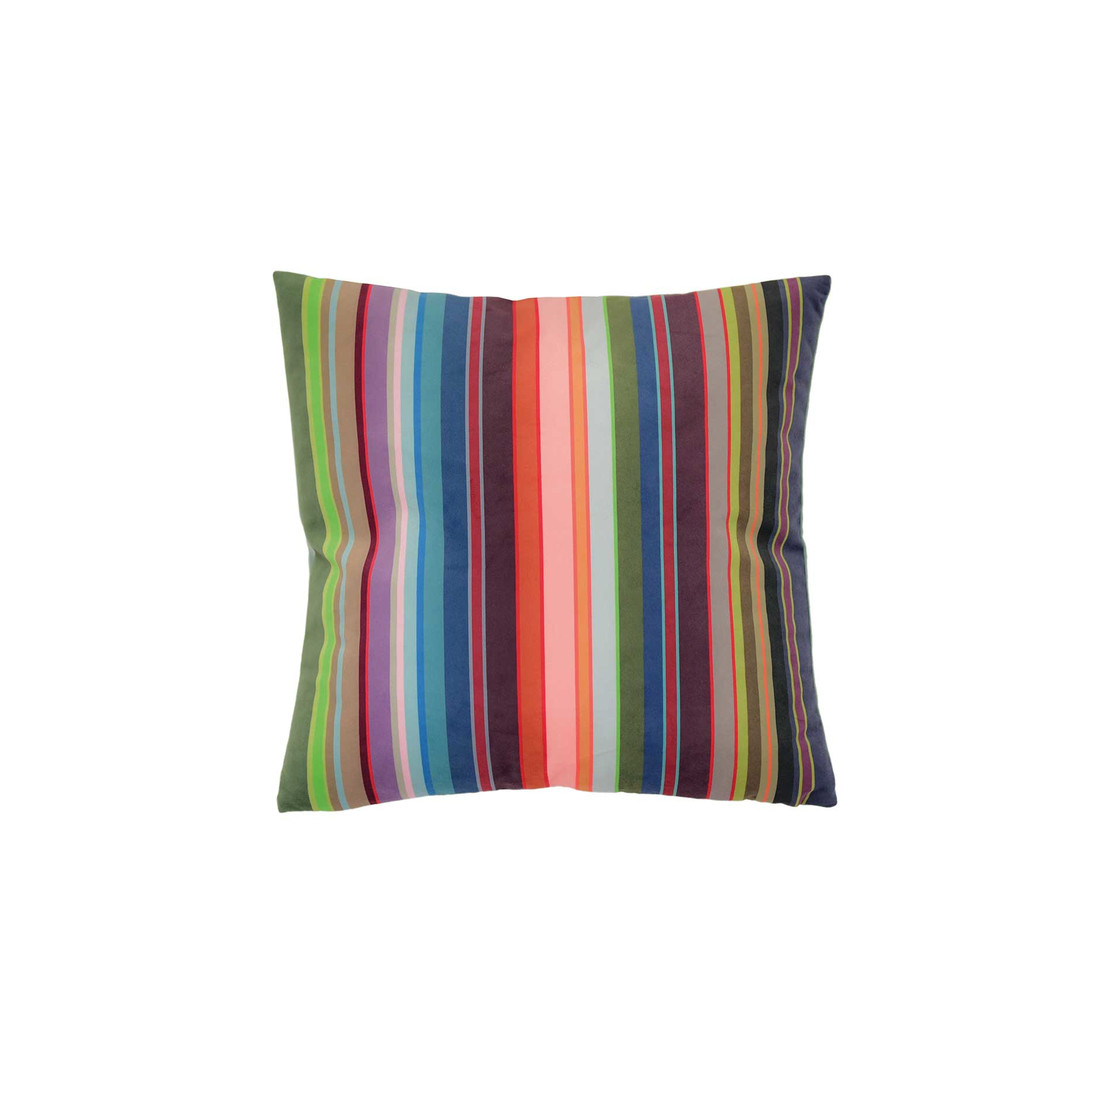 Samtkissen Stripes small 45 x 45 cm by REMEMBER